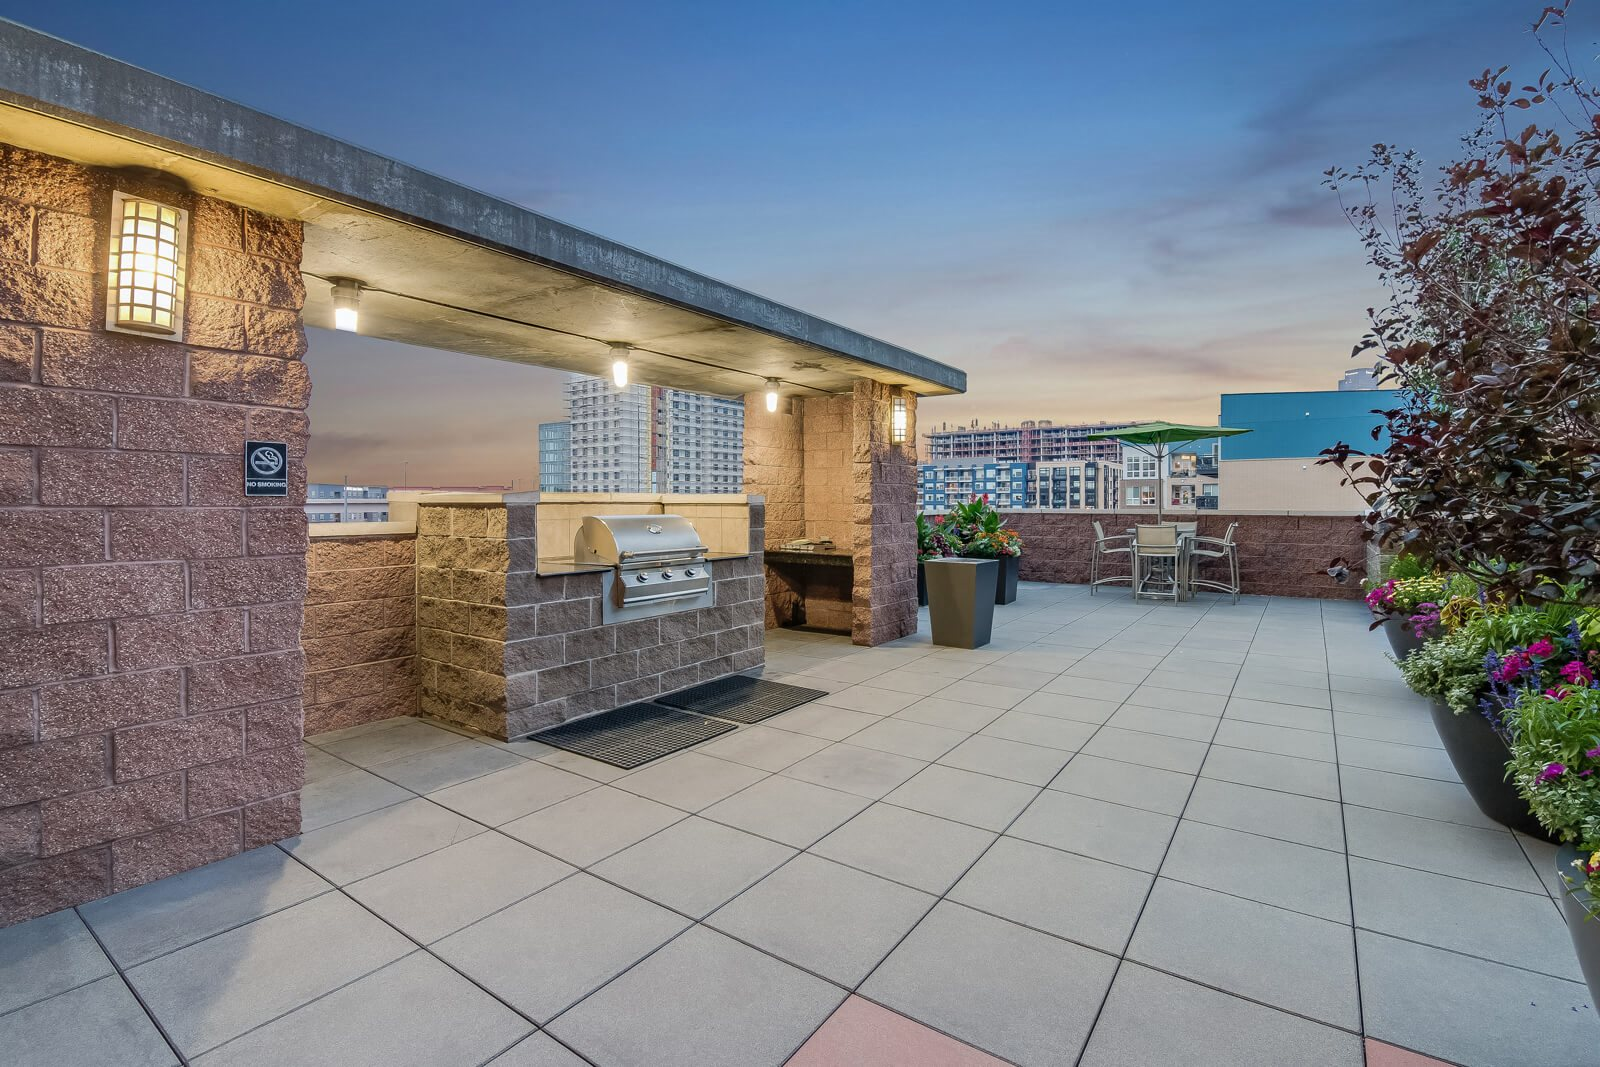 BBQ Grills by the Pool at The Manhattan, 80202, CO